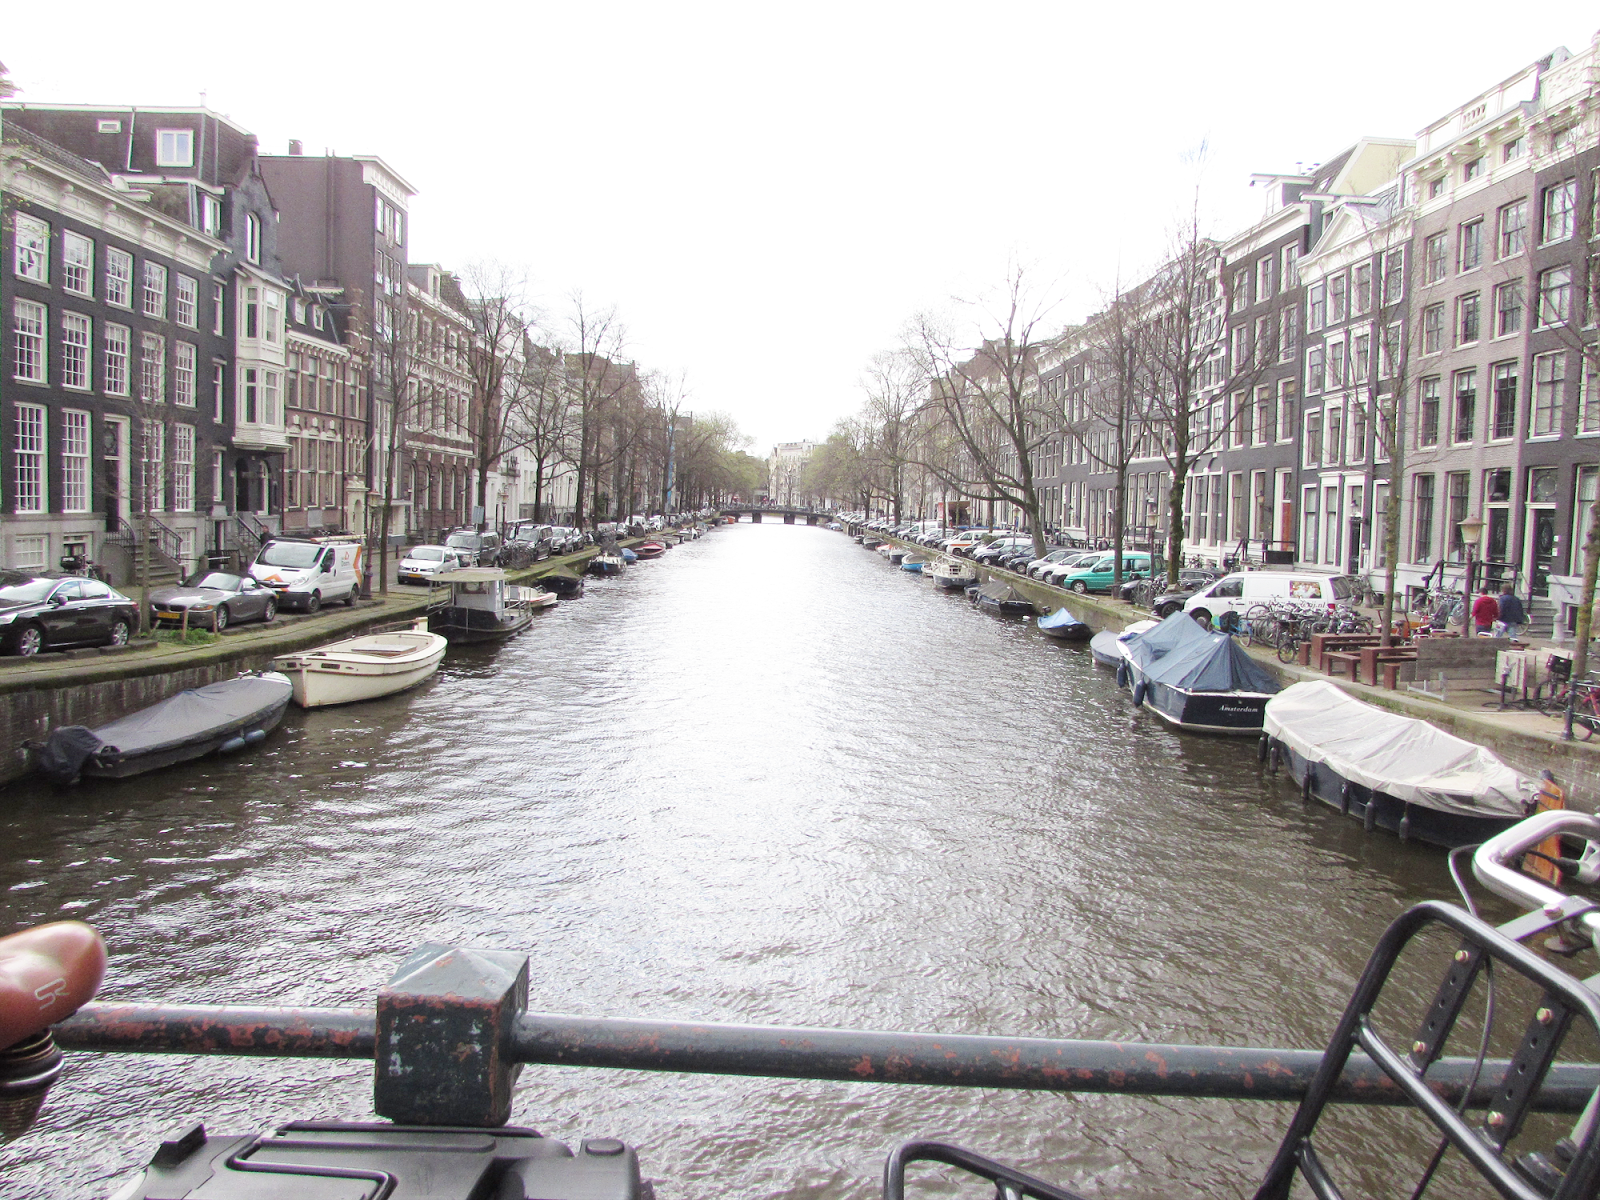 A Trip To Amsterdam #1